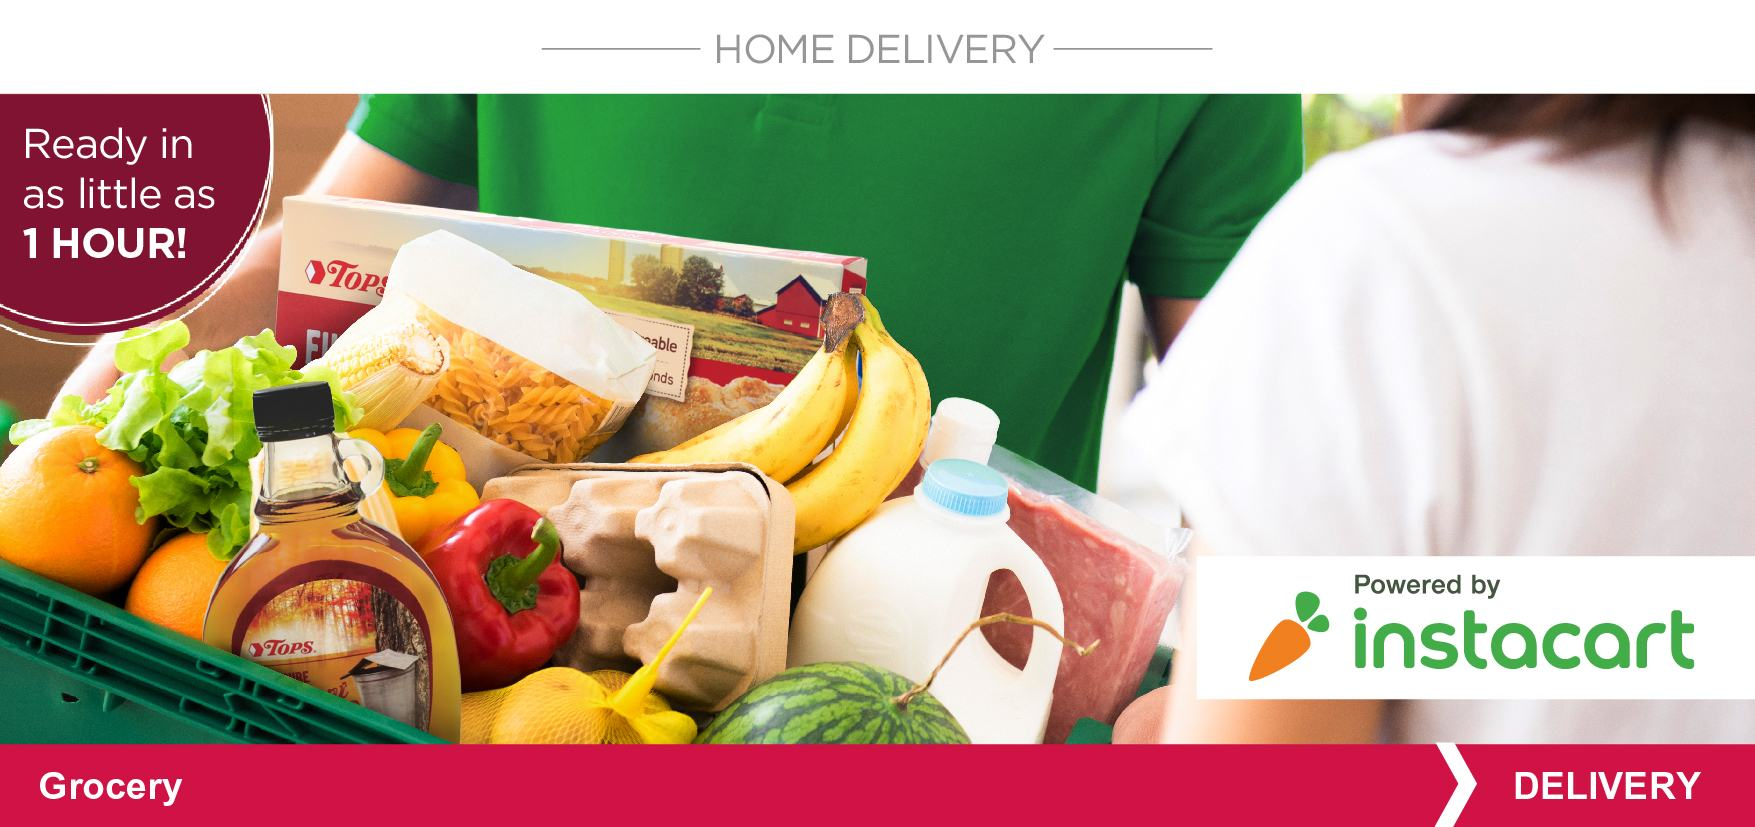 Home Delivery Powered by Instacart